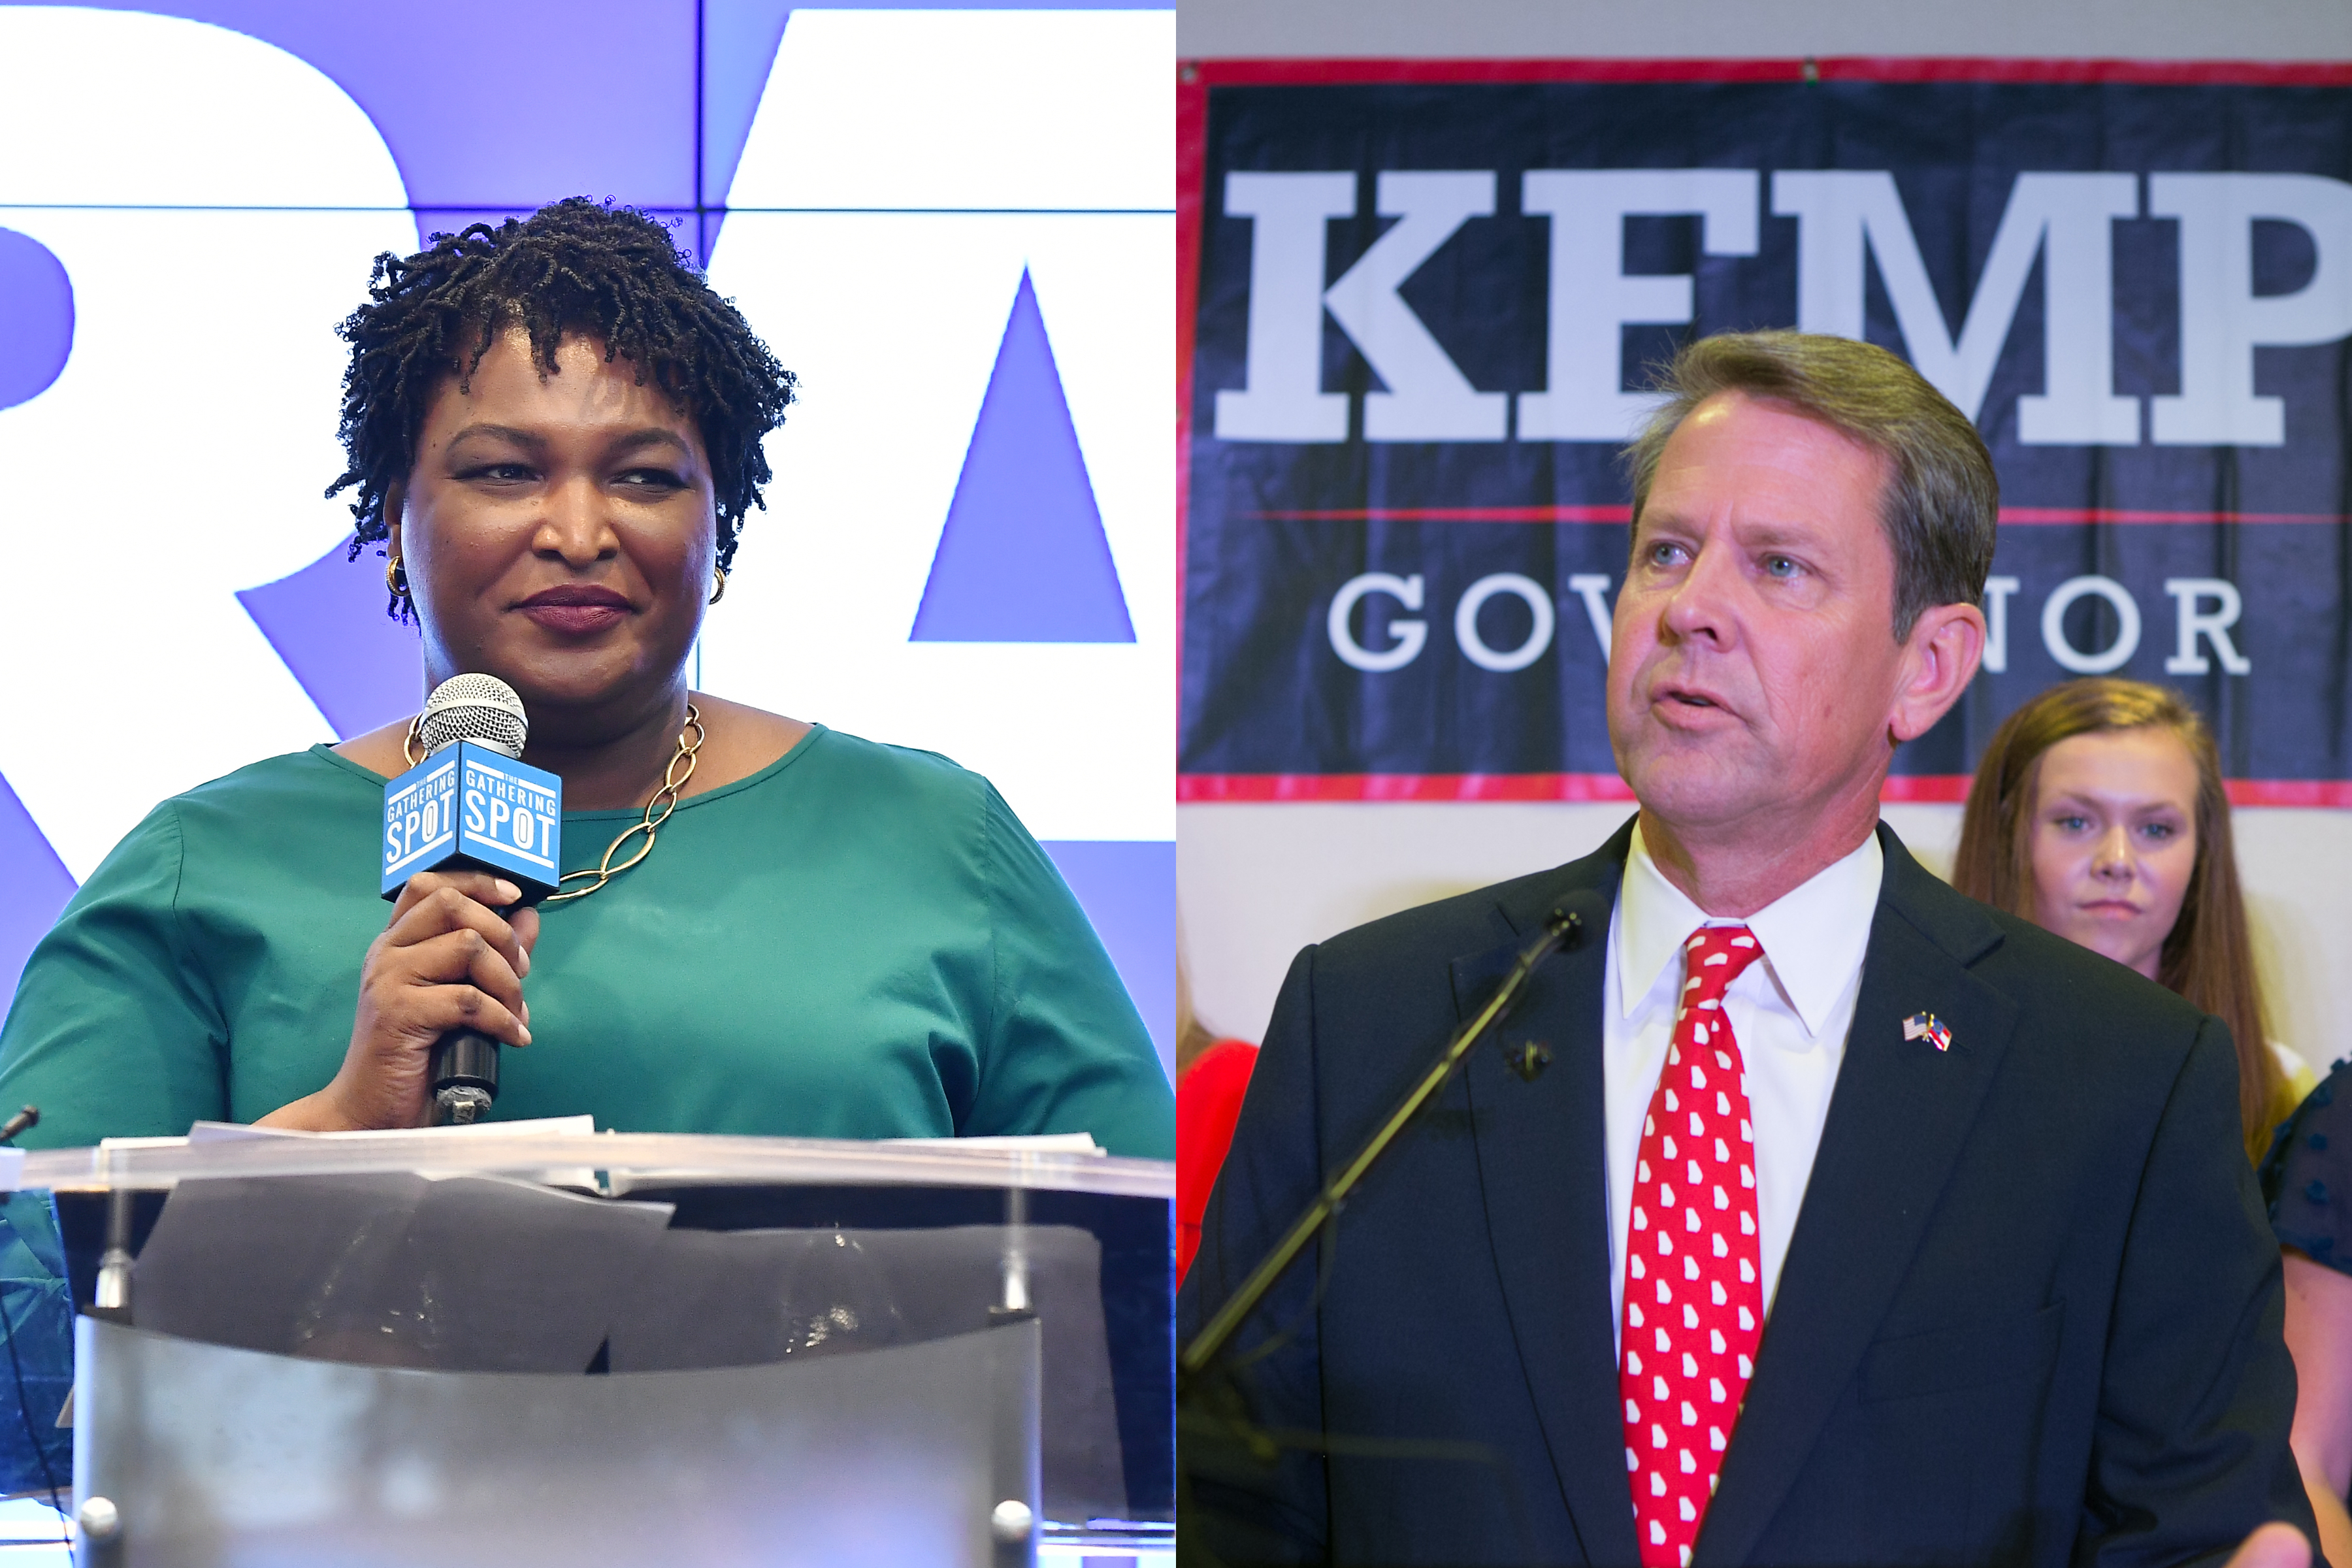 Georgia election: the race between Stacey Abrams and Brian Kemp